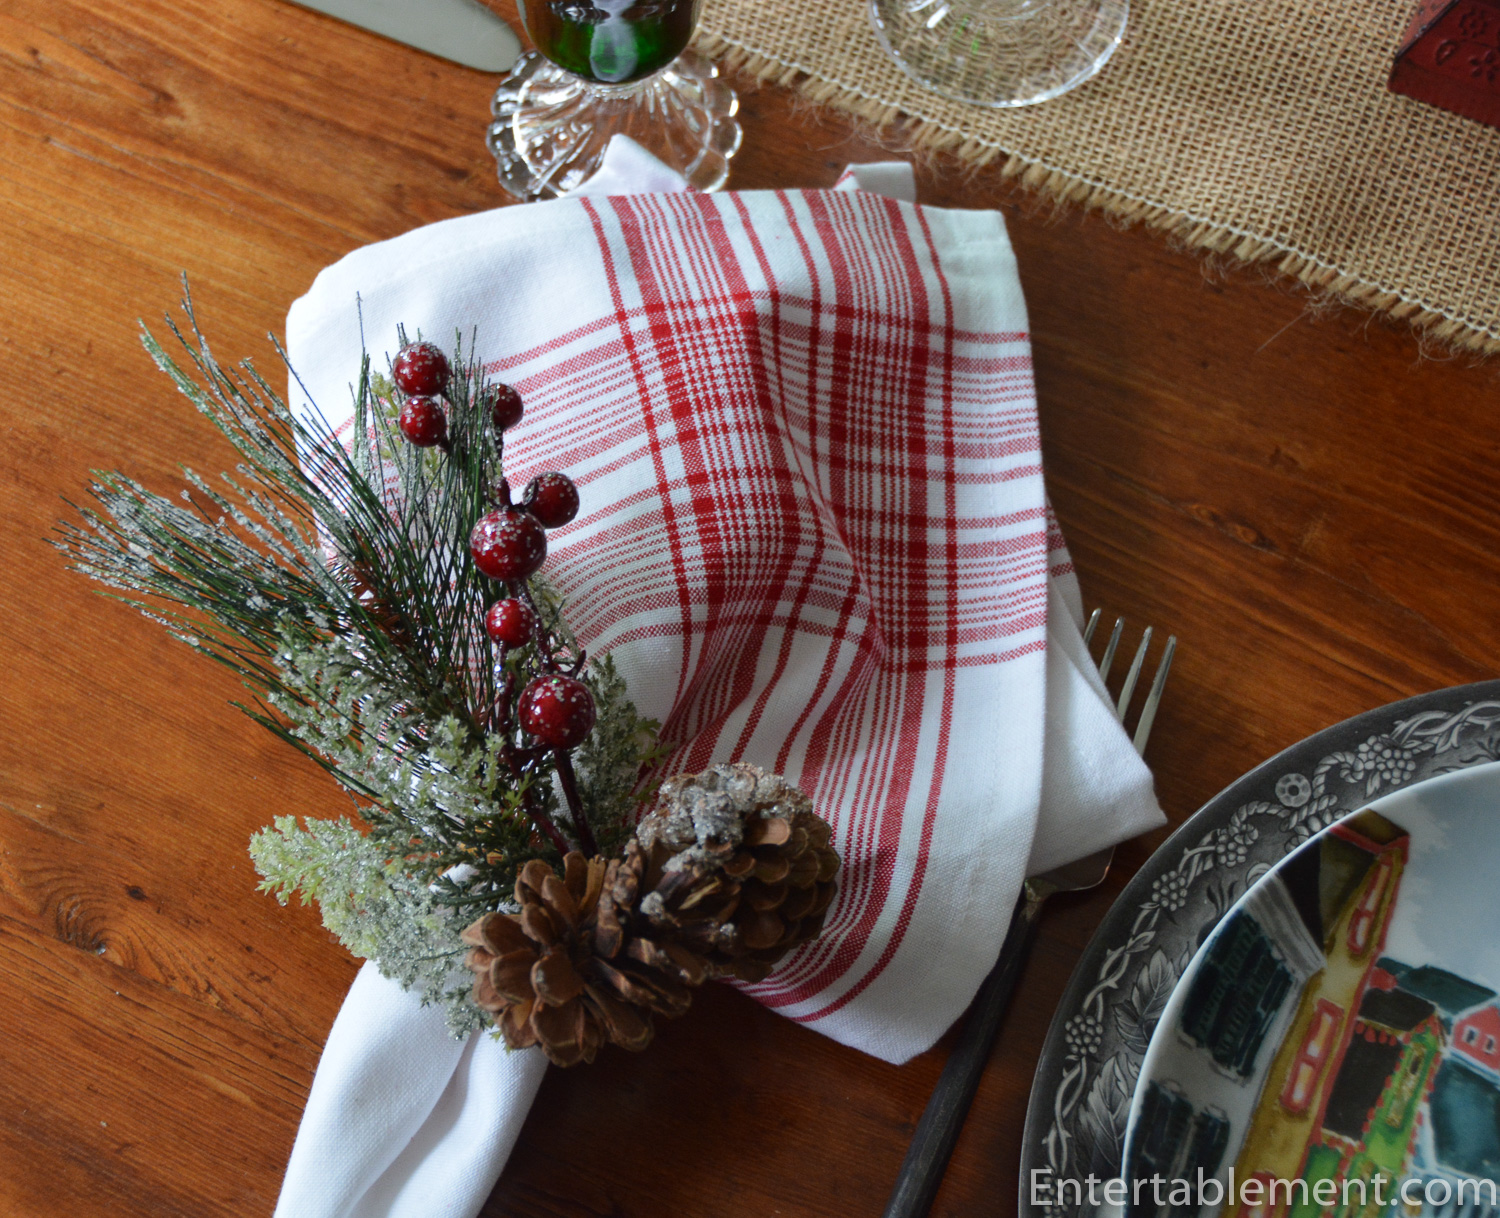 Winter Village By Pottery Barn Entertablement